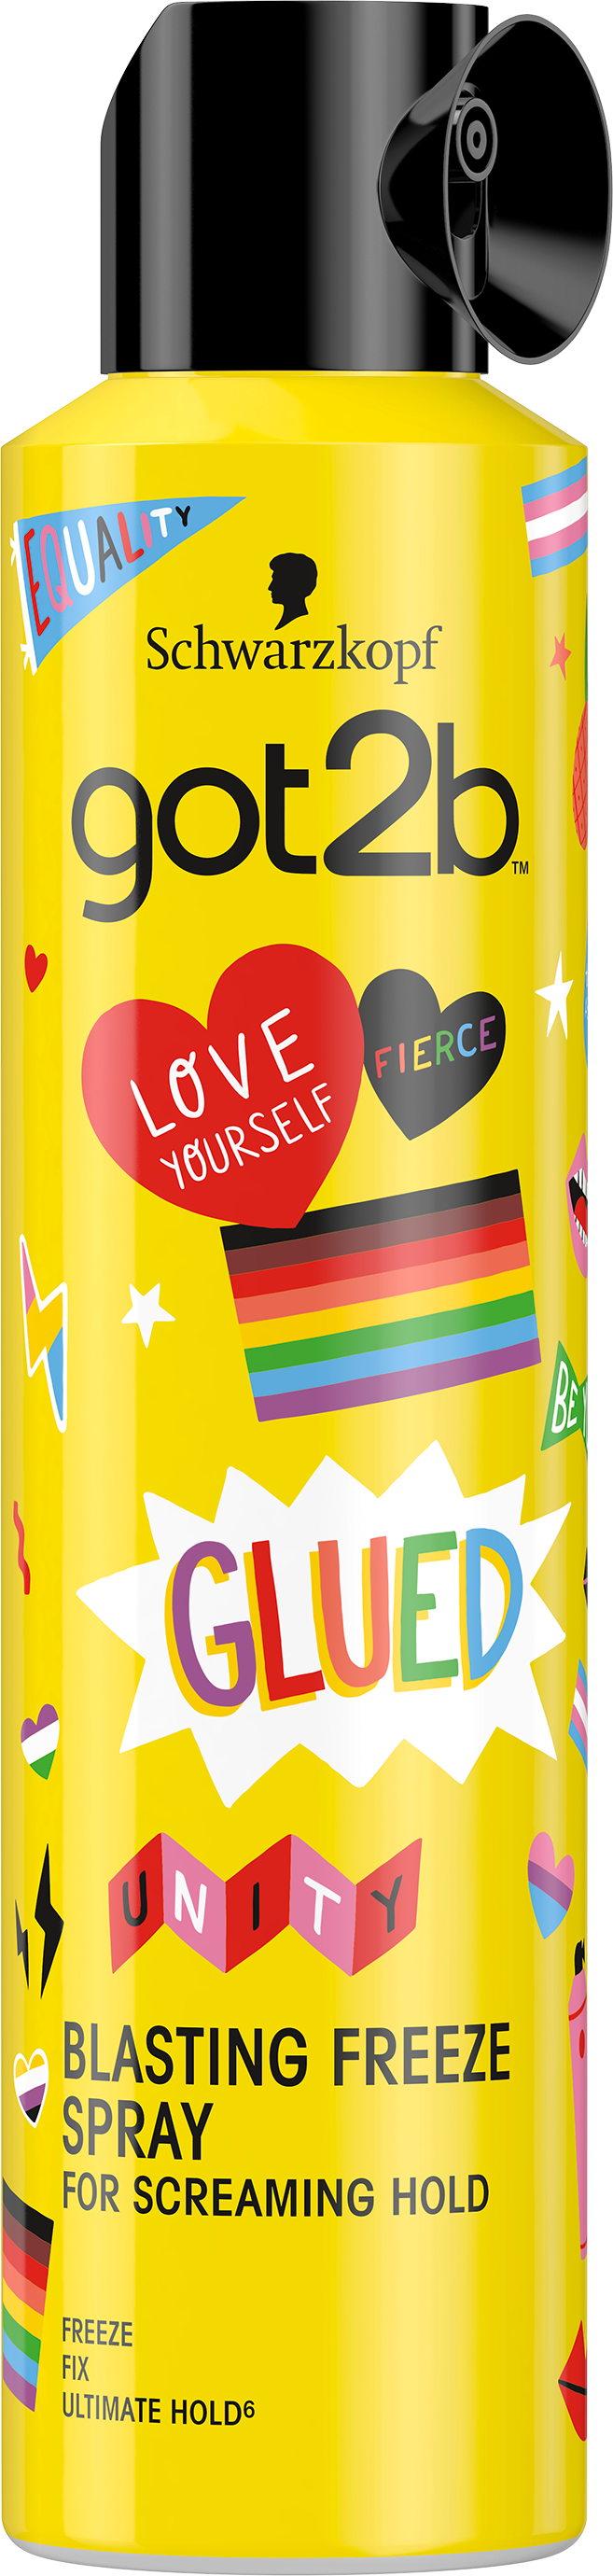 Schwarzkopf got2b and Just Like Us - a partnership celebrating the individuality of LGBT+ young peop